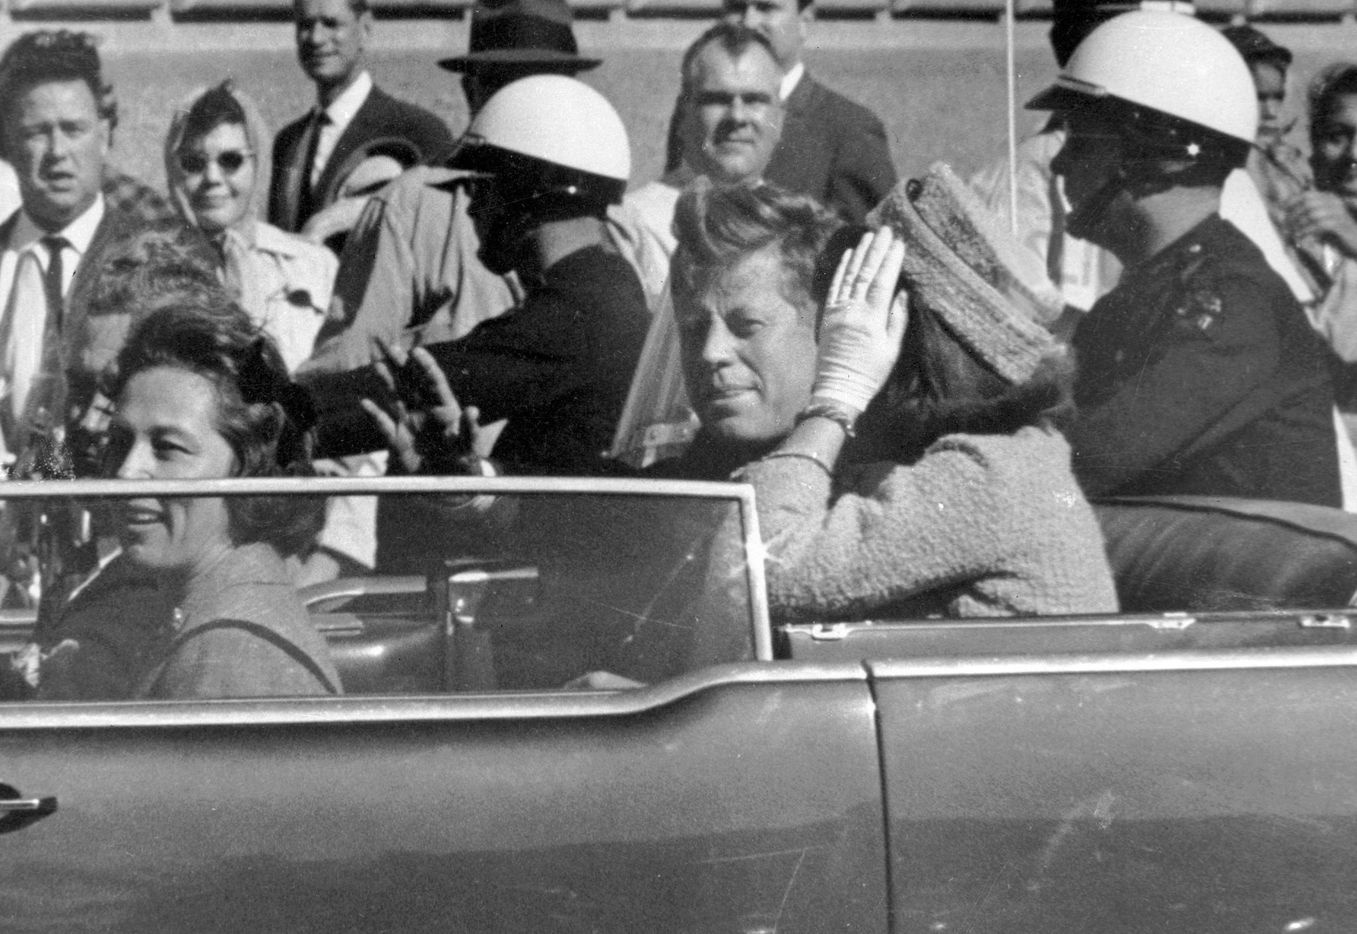 Approximately one minute before he was shot, Pres. John F. Kennedy waves from his car as the motorcade passed through downtown Dallas. Riding with Kennedy are First Lady Jacqueline Kennedy (right), Texas first lady Nellie Connally (left), and her husband, Texas Gov. John Connally.